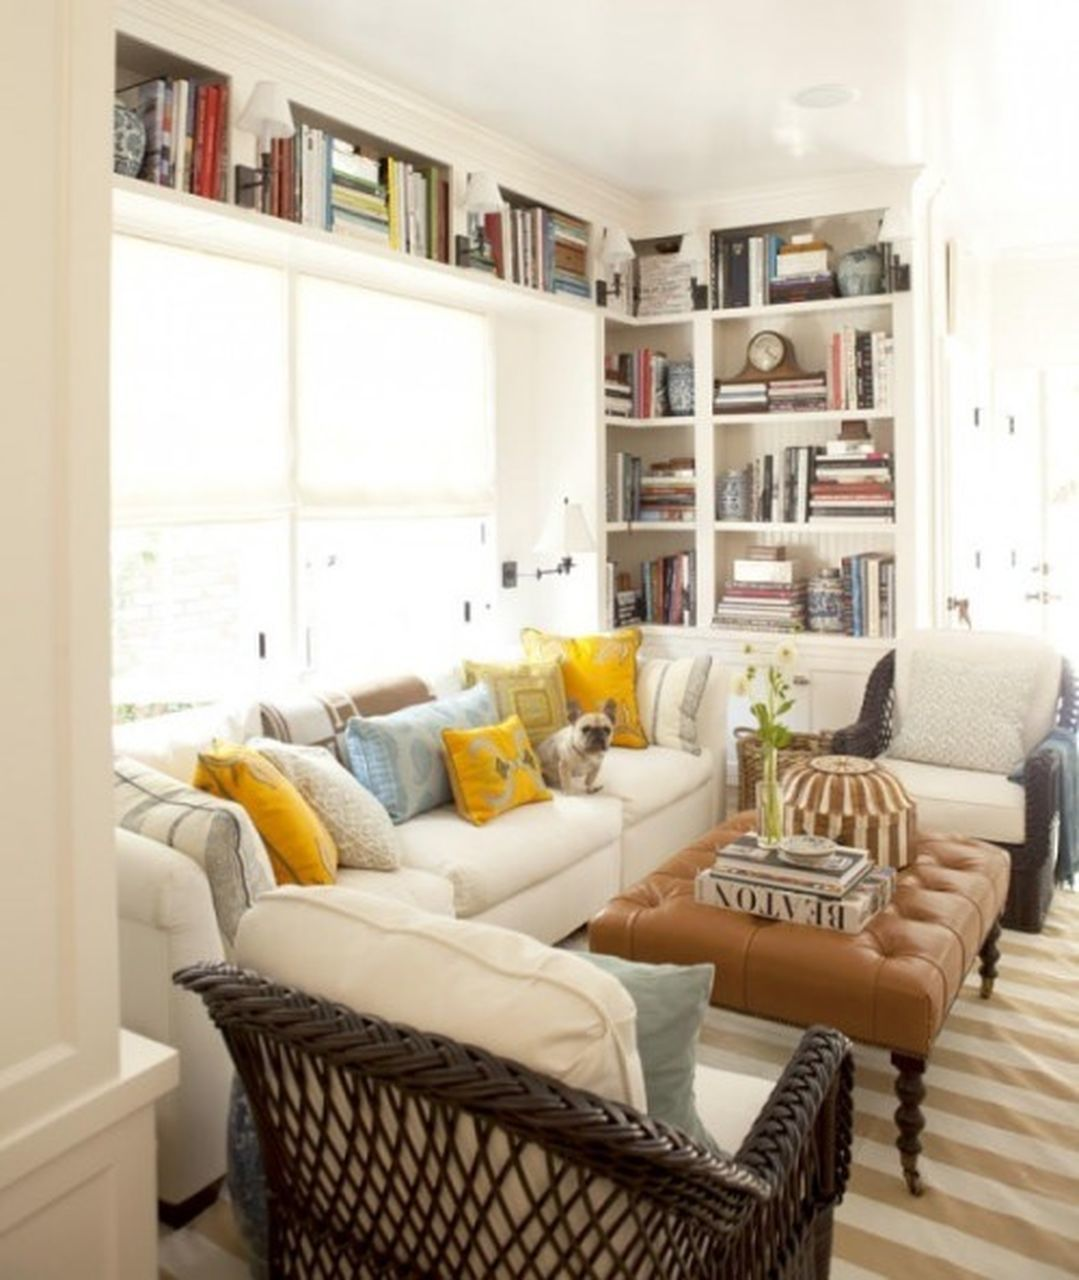 sofa, home interior, indoors, living room, home showcase interior, luxury, cushion, domestic life, bedroom, pillow, no people, bed, day, bookshelf